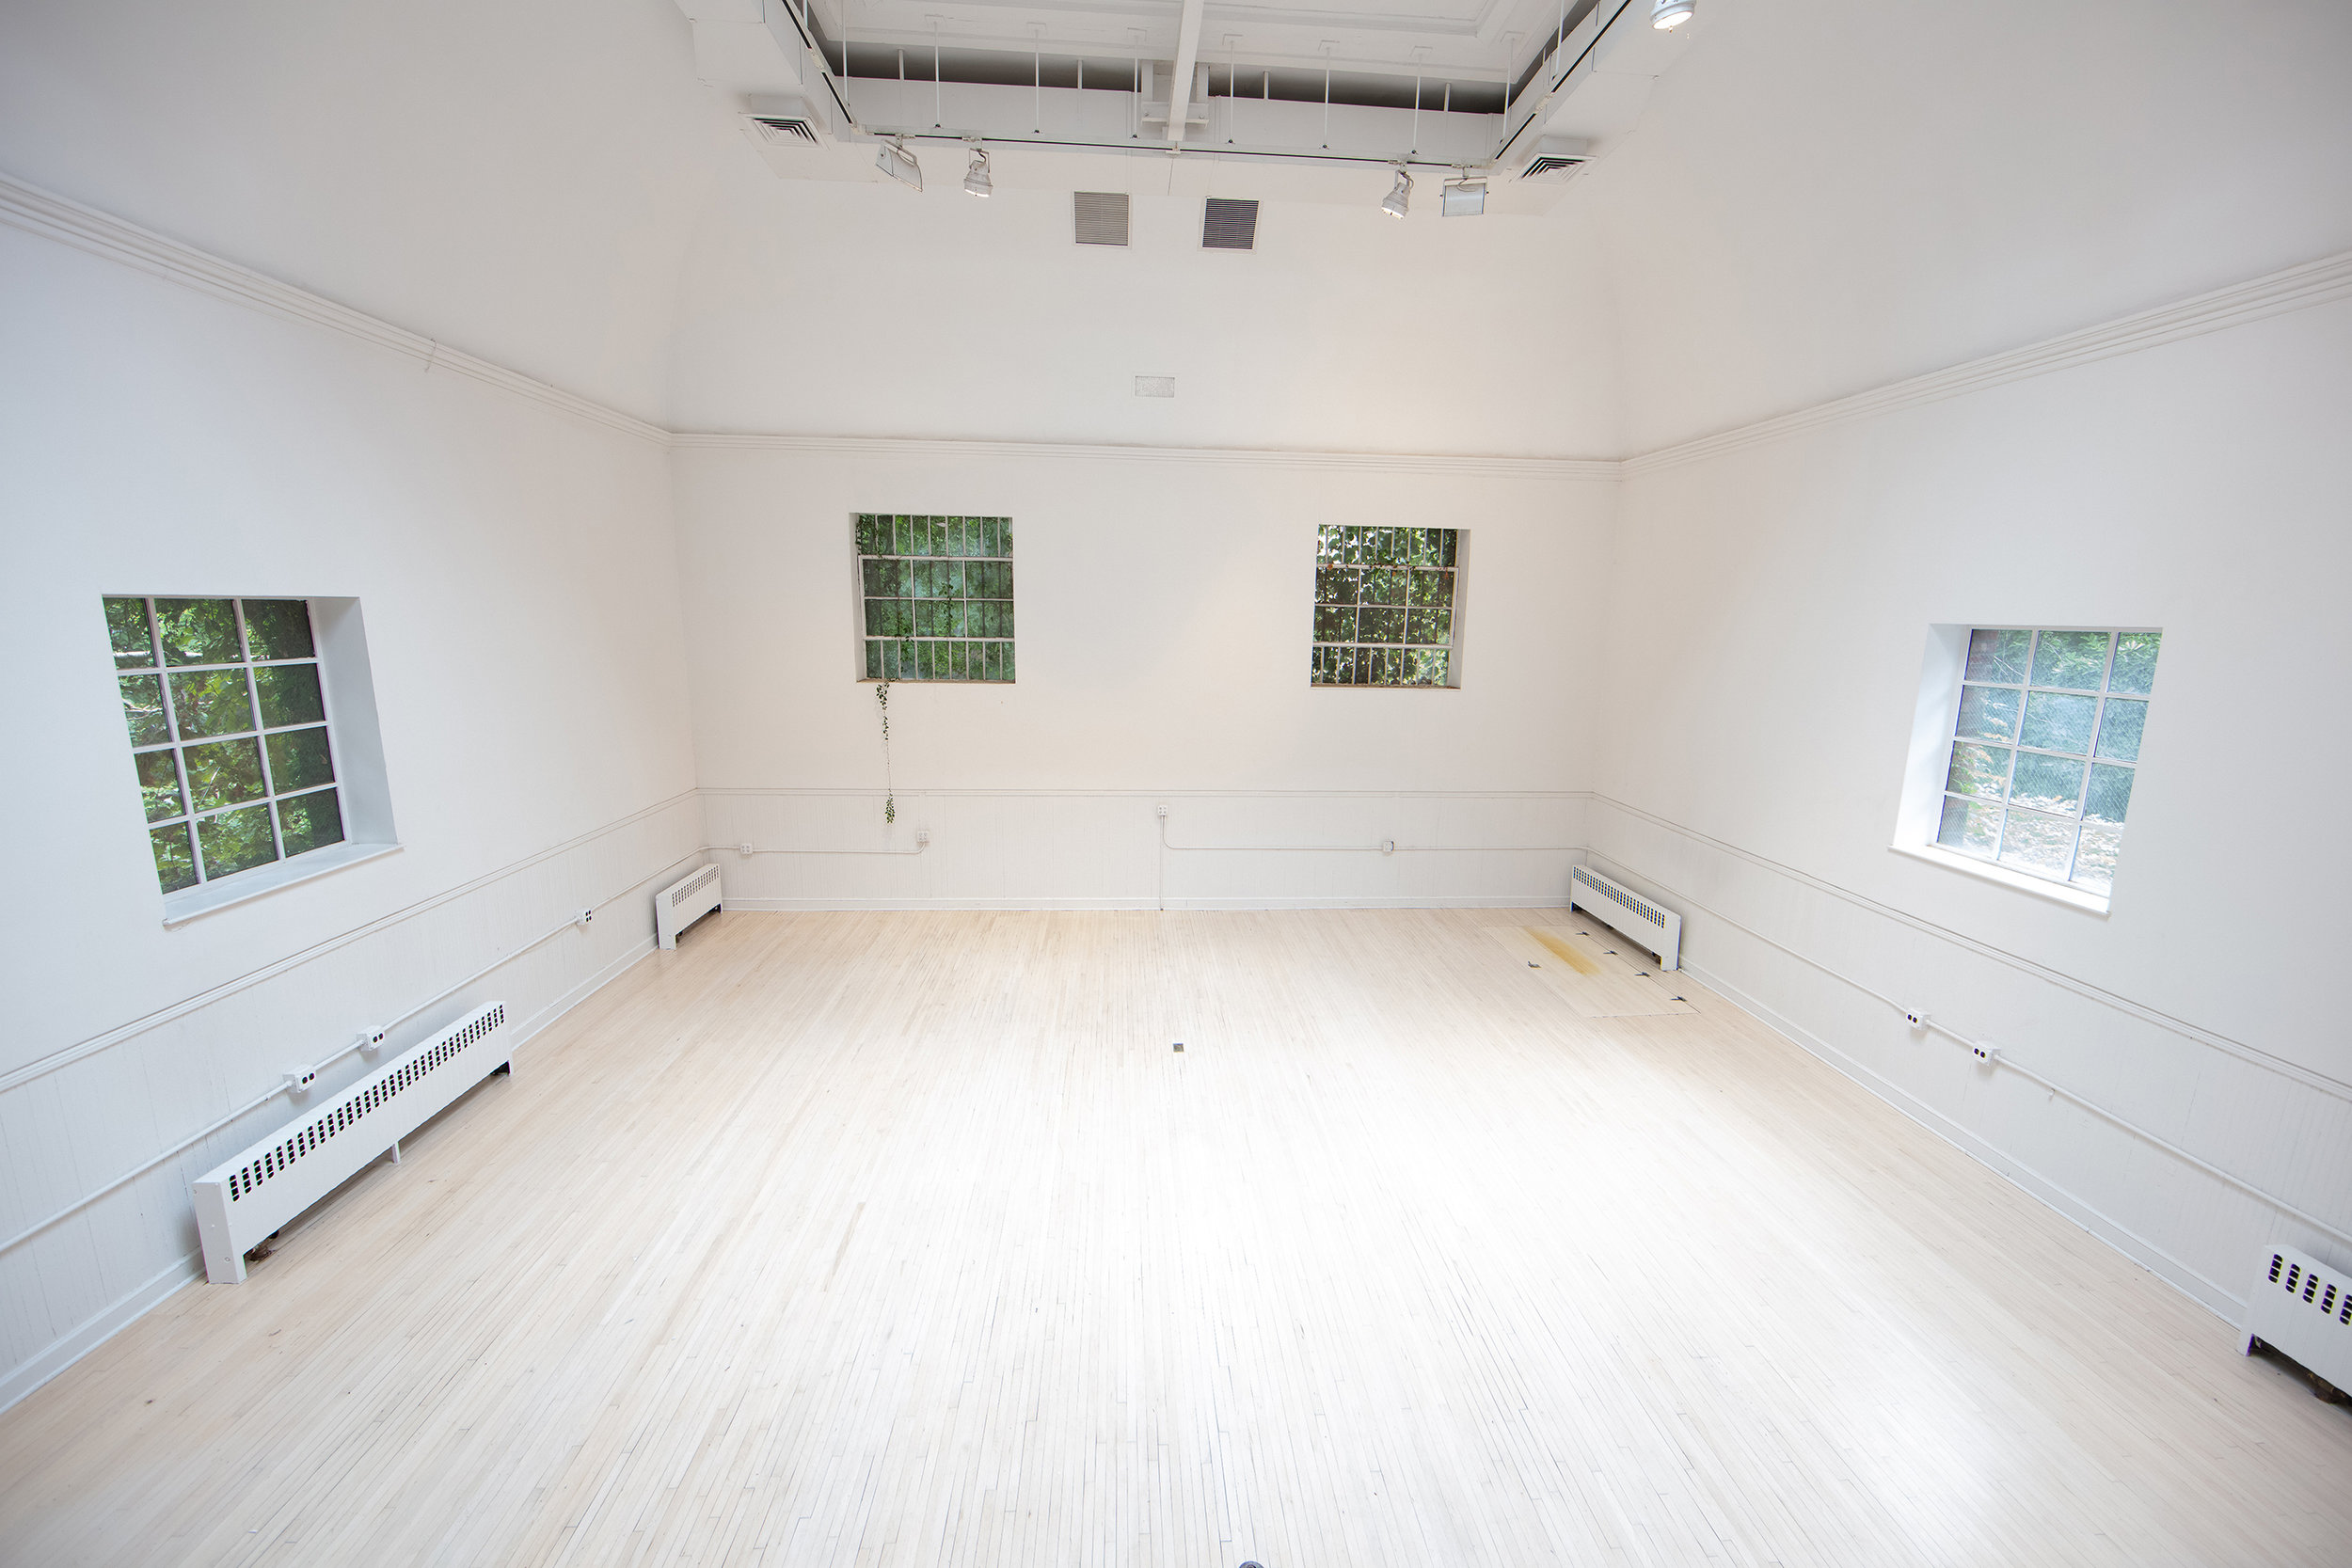 Main Studio Space. 22 Ft. Ceiling height.